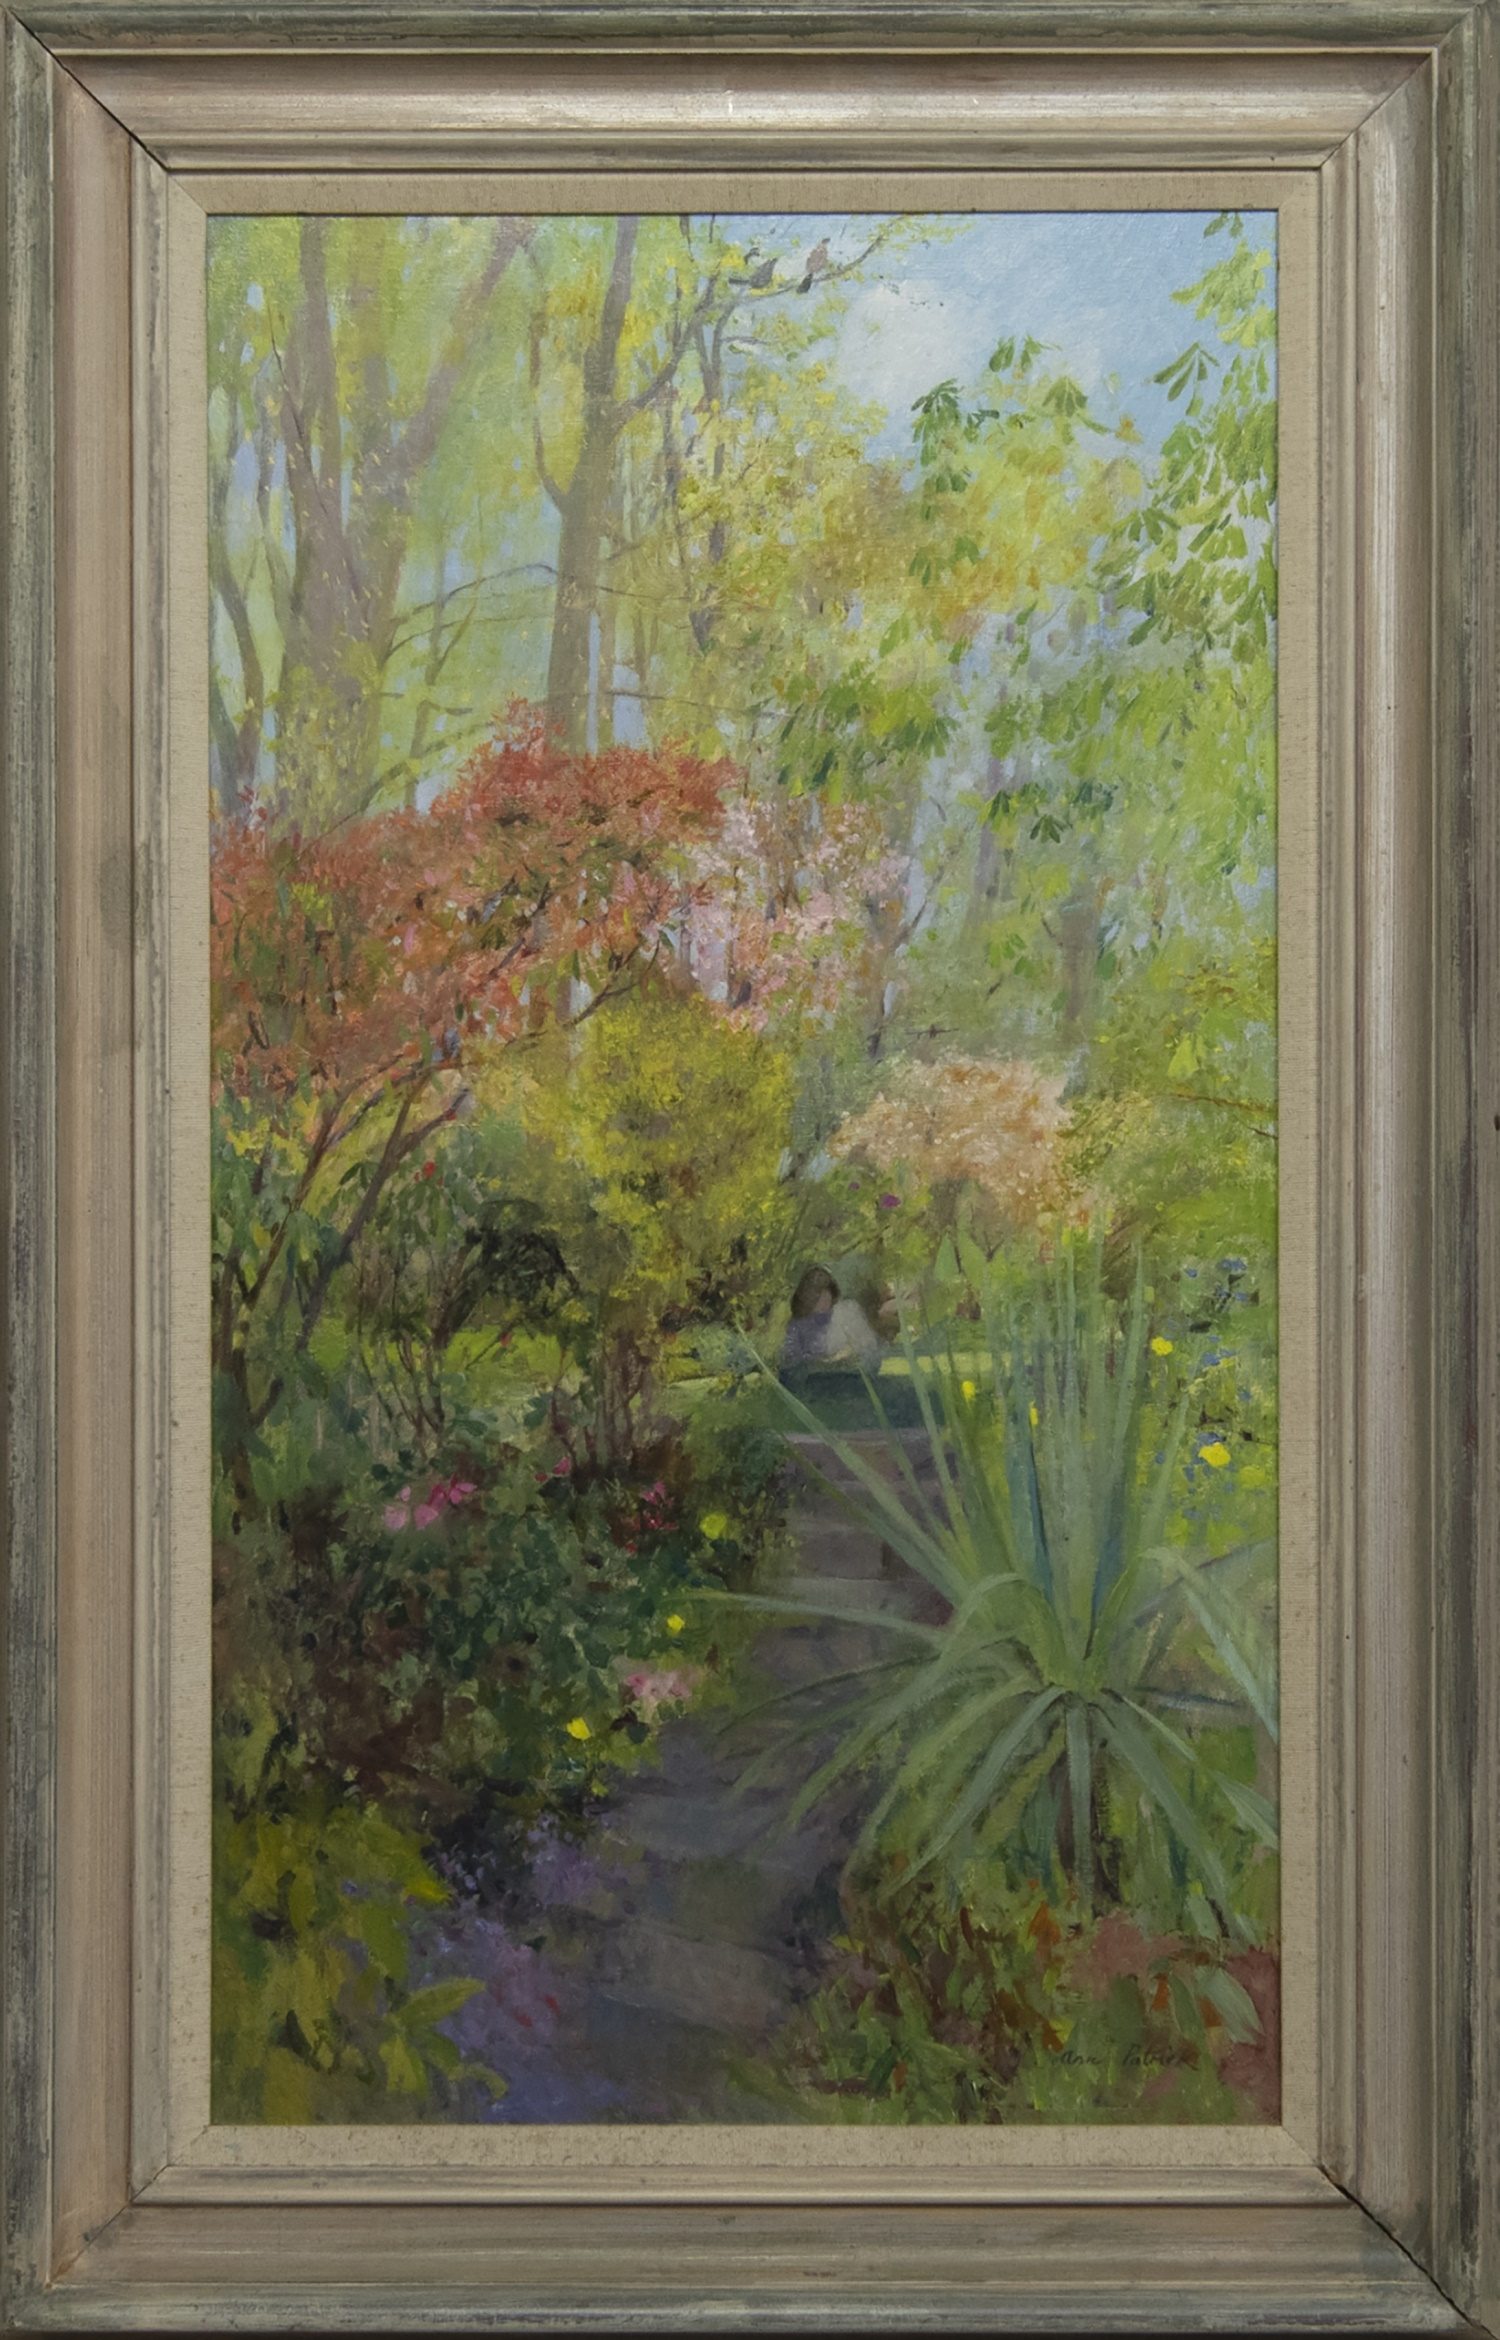 IN THE SPRING TIME, AN OIL BY ANN PATRICK